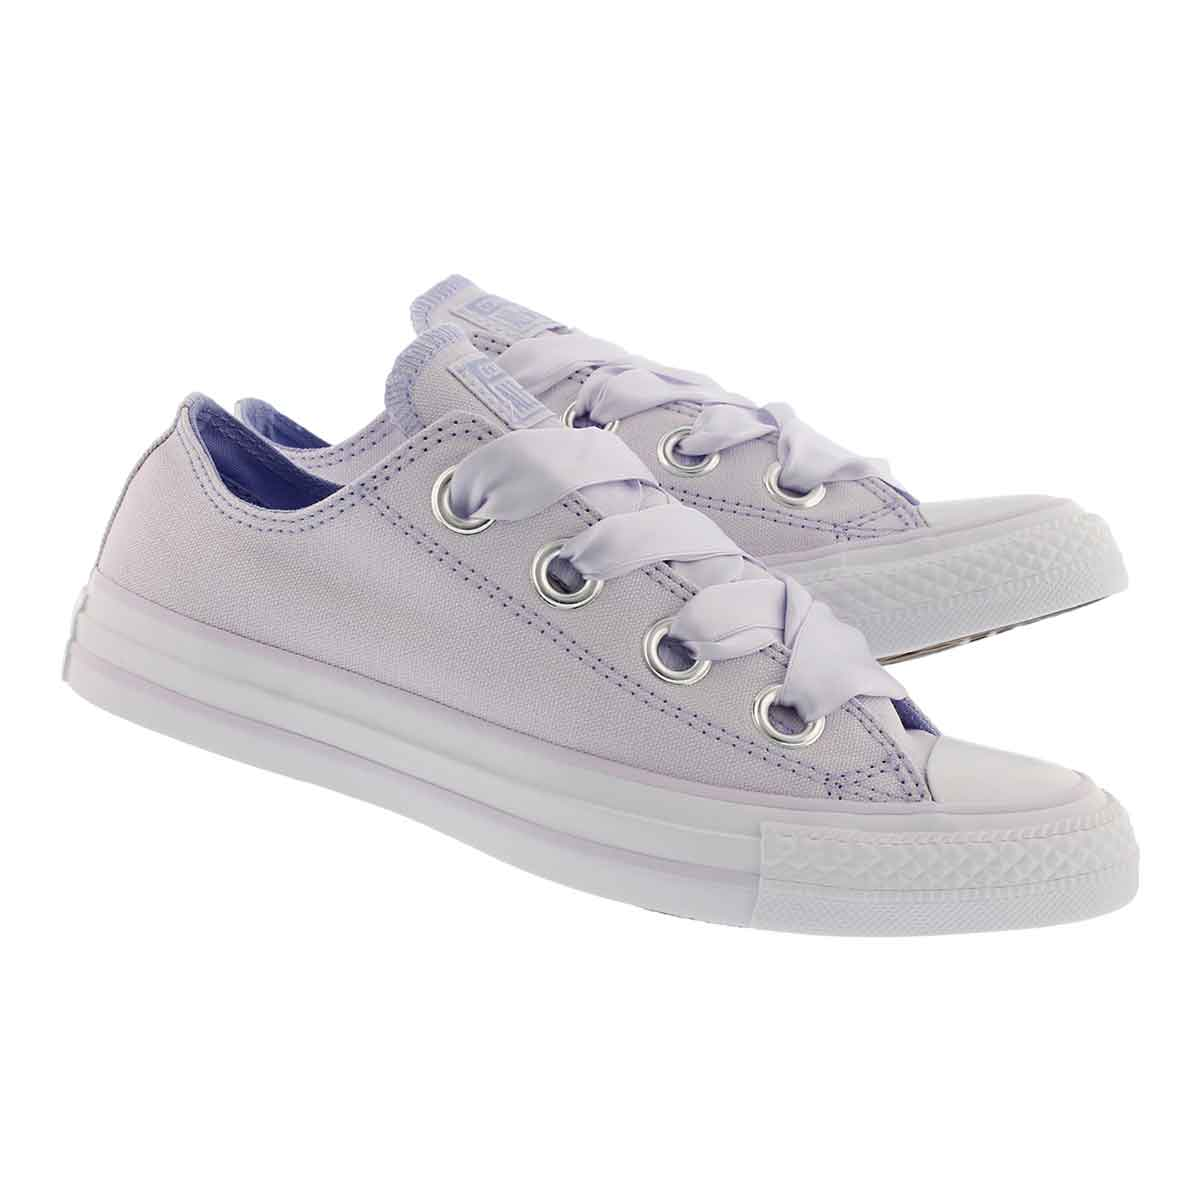 Lds CT AS Big Eyelets barely grp sneaker